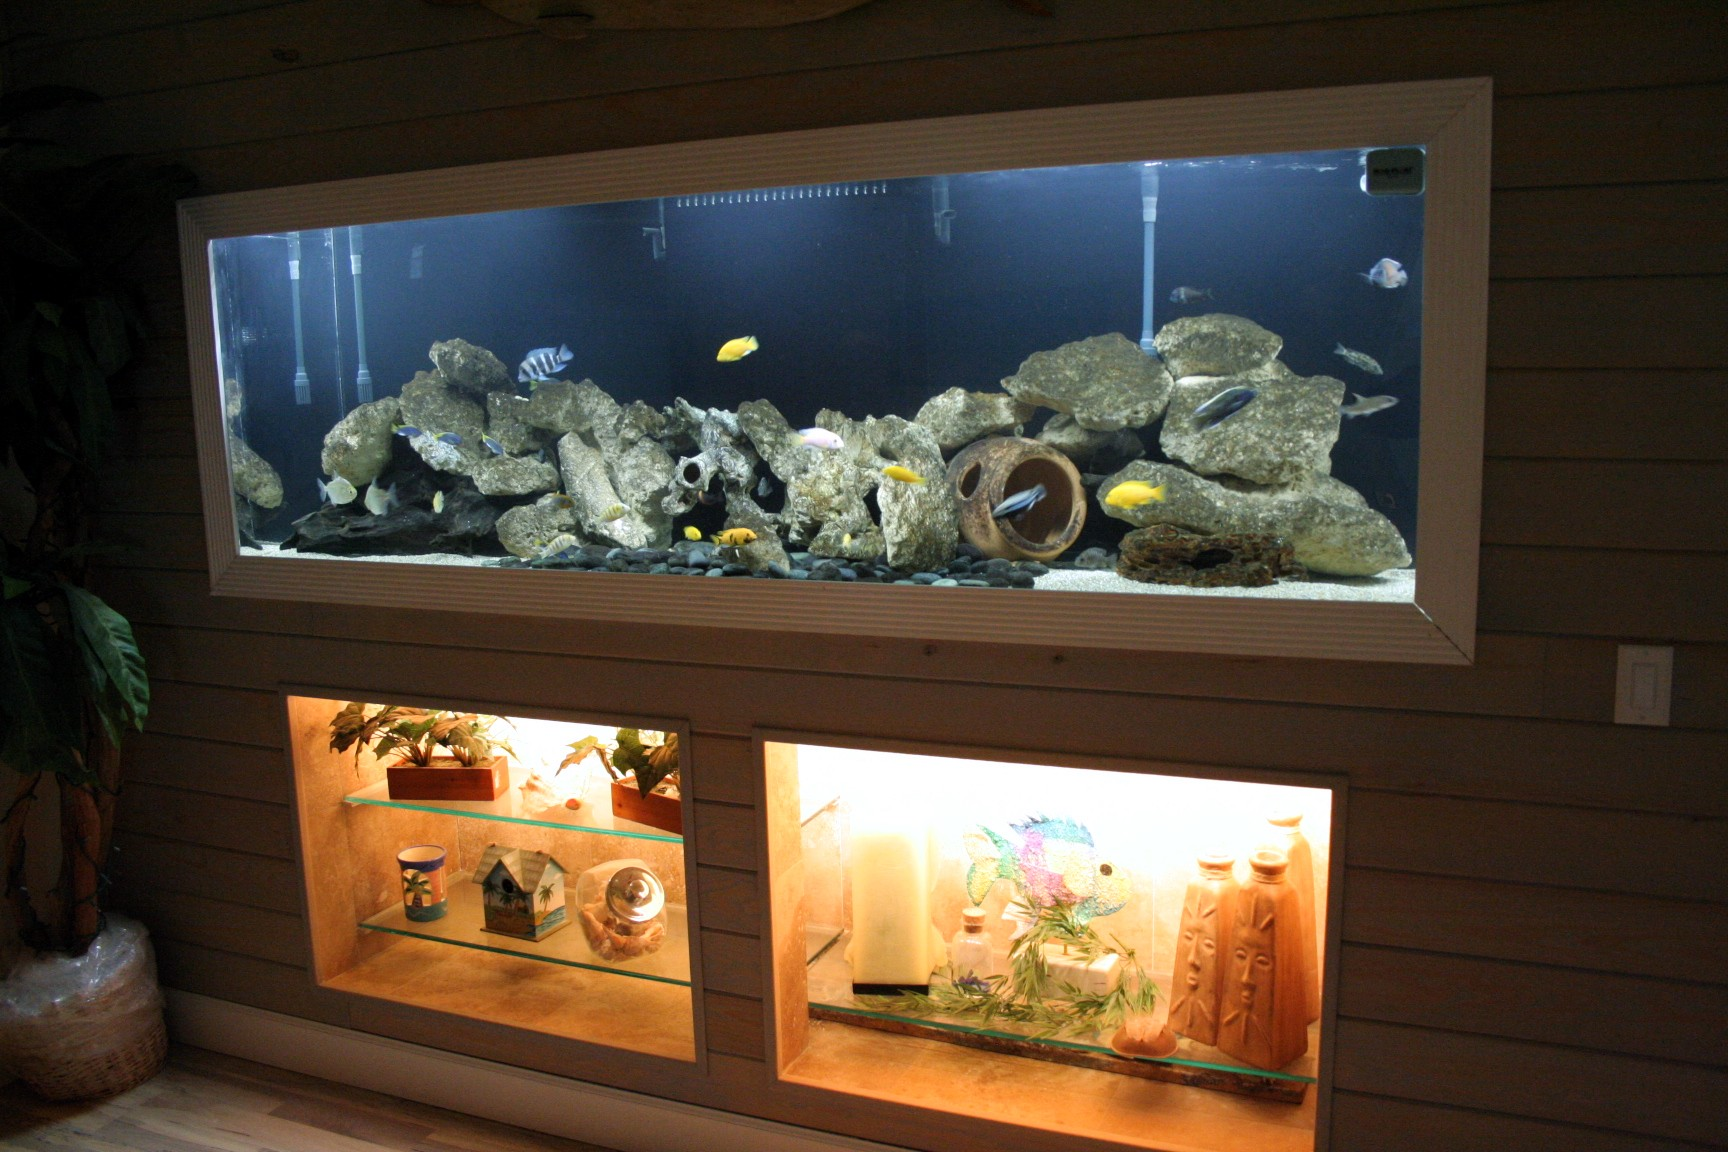 Help me arrange my living room. Fish Tank in living room, trashy? | Page 2 | TigerDroppings.com